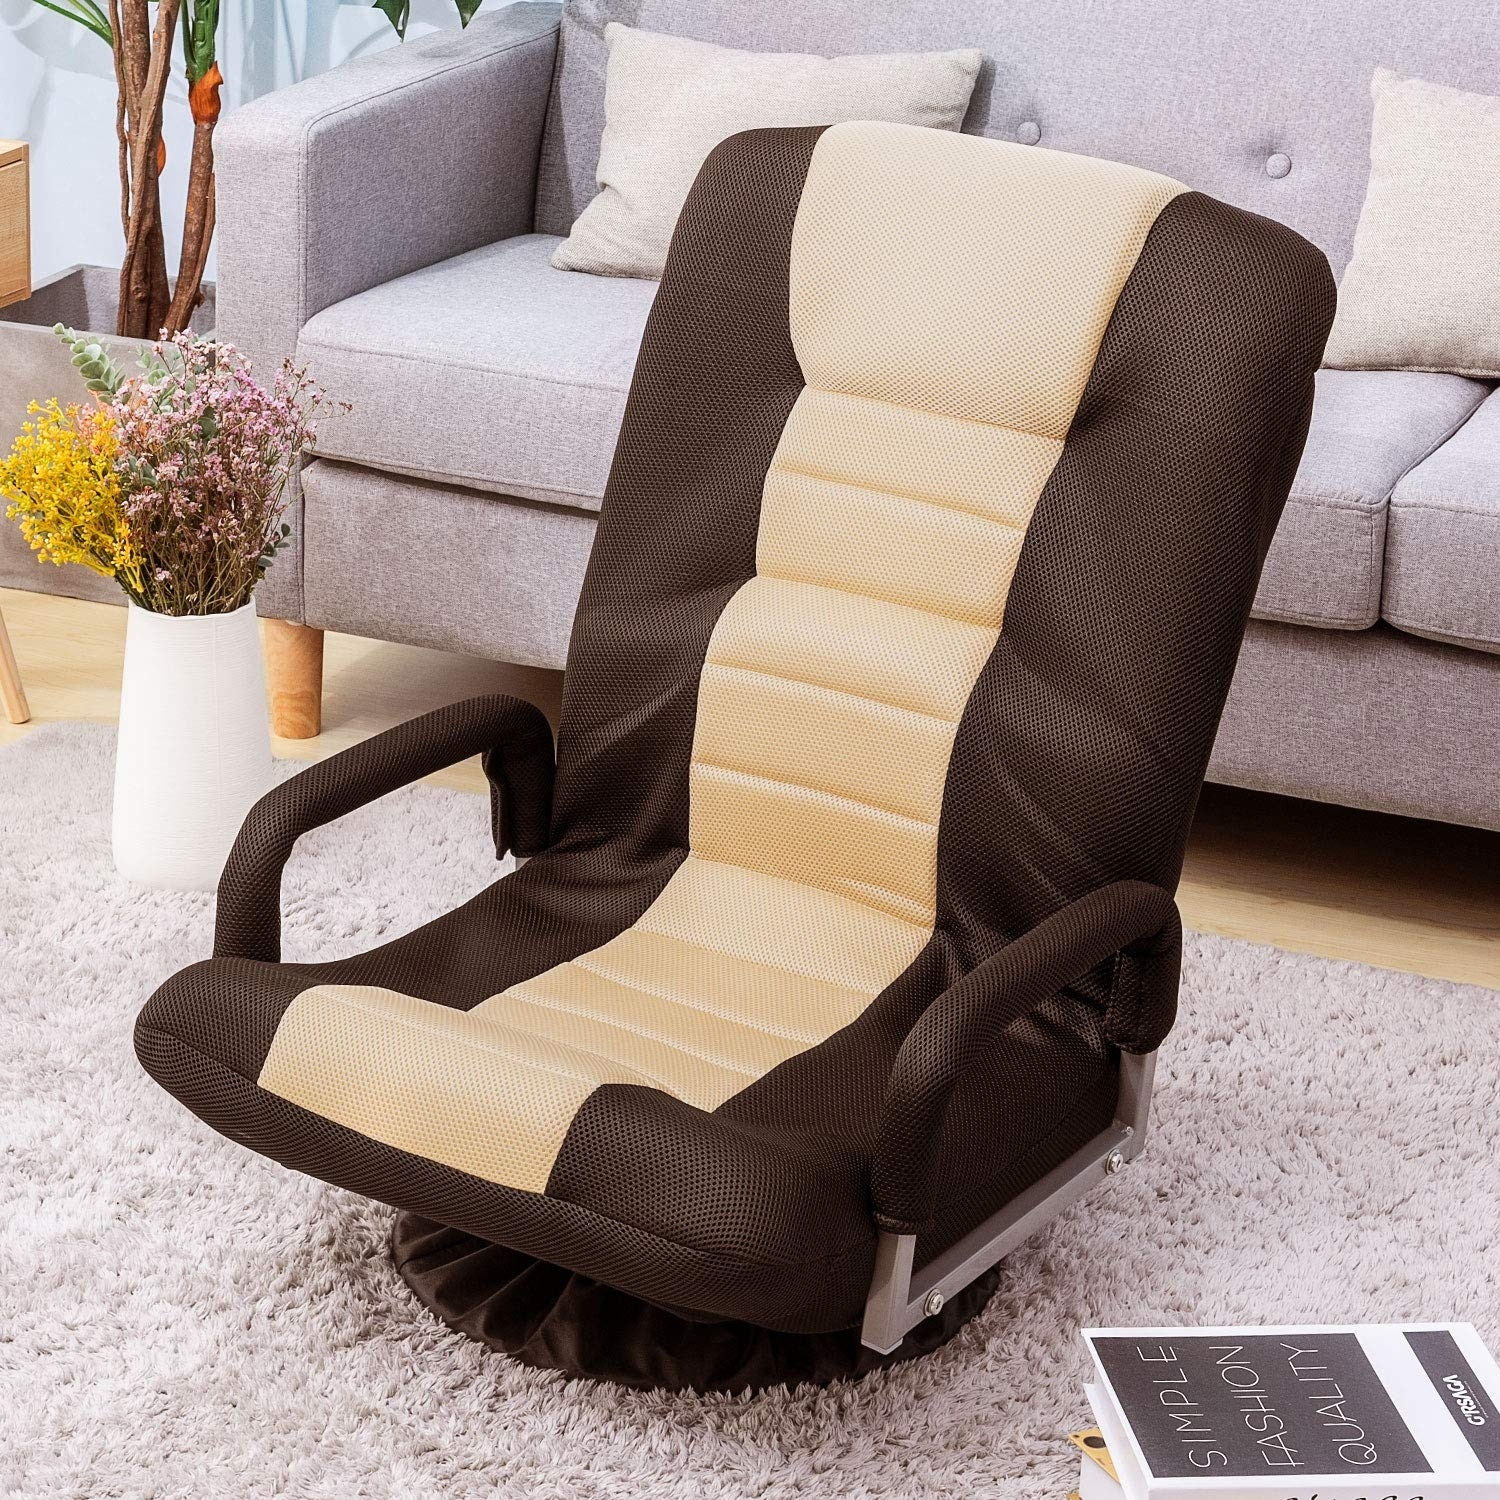 Shop For Swivel Video Rocker Gaming Chair Adjustable 7 Position Floor Chair Folding Sofa Lounger Get Free Shipping On Everything At Overstock Your Online Furniture Outlet Store Get 5 In Rewards With Club O 32338368